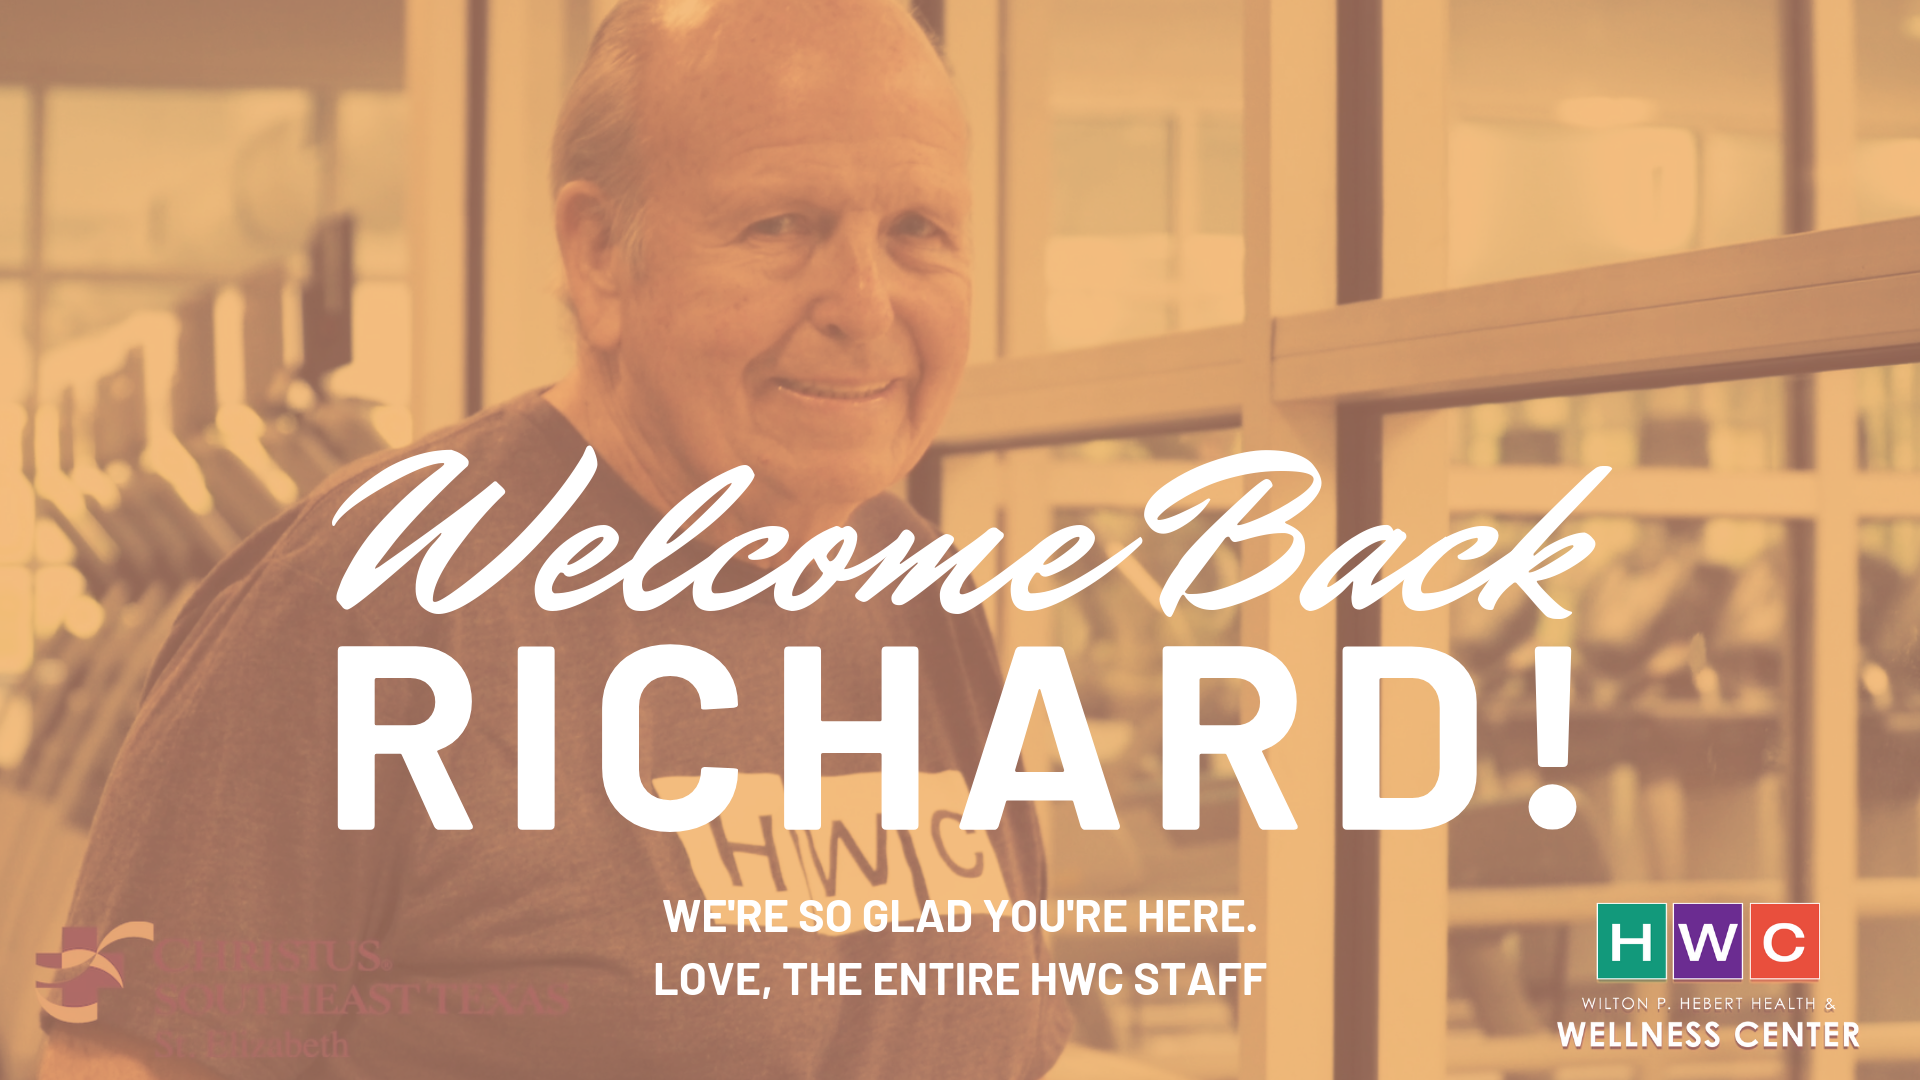 Copy of Welcome Back Richard (1).png